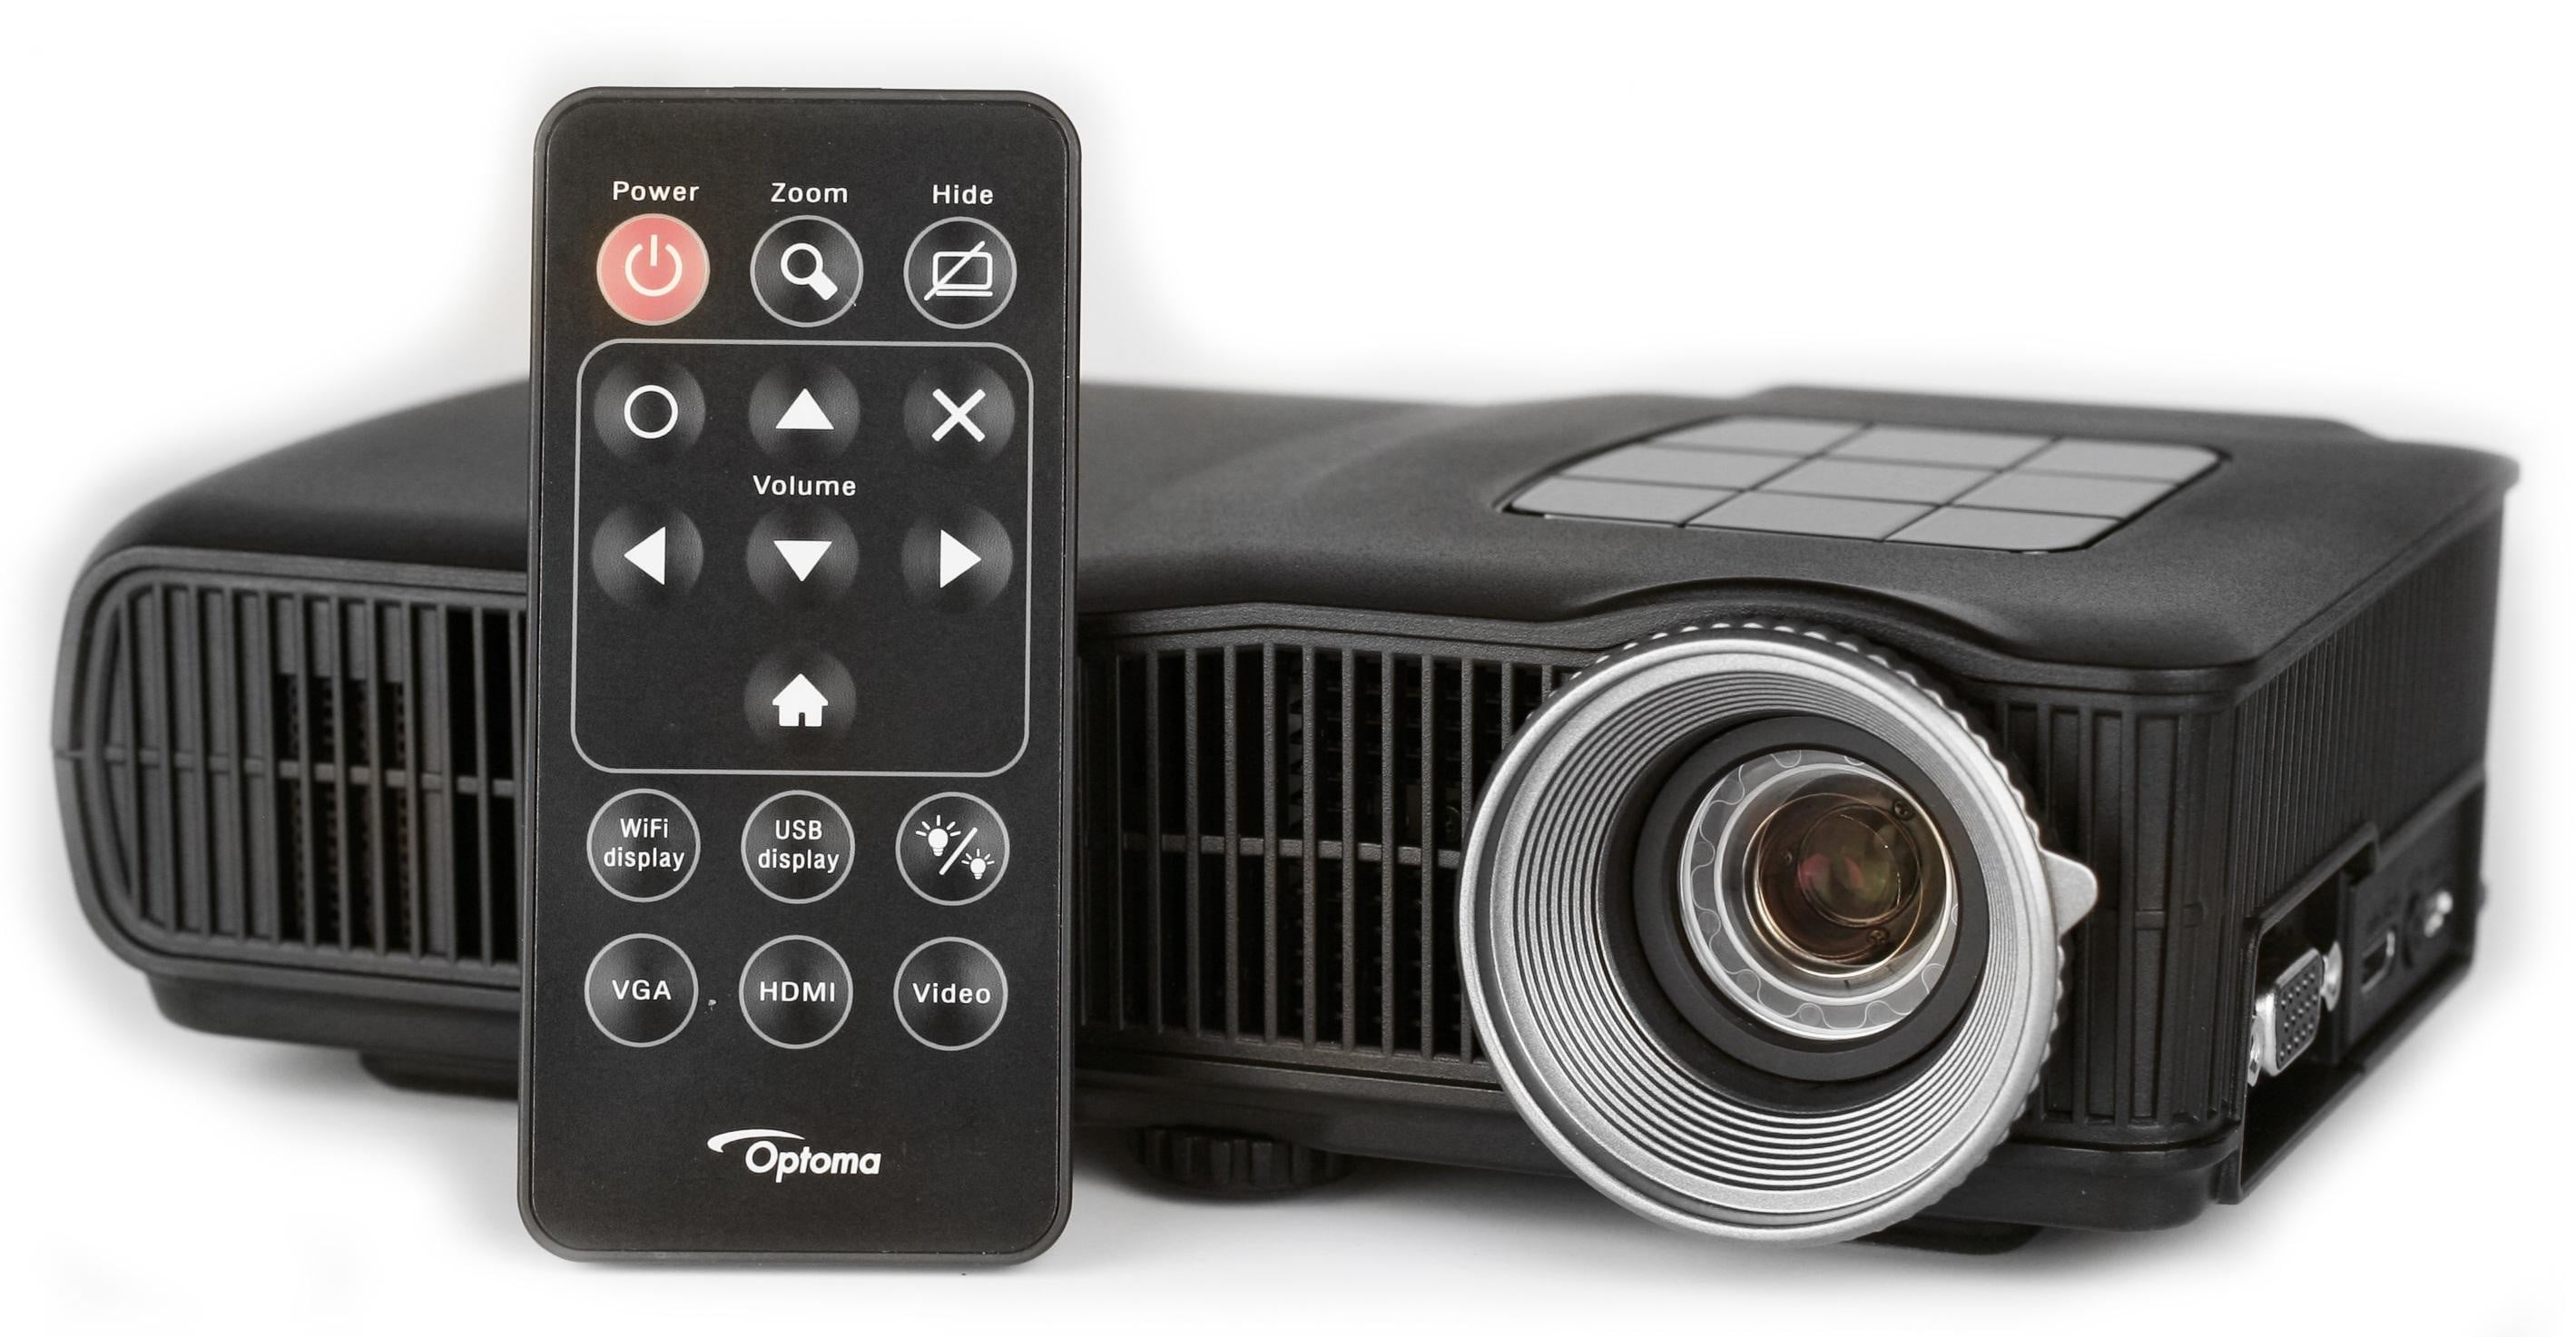 Optoma unveils an hd projector that fits in the palm of for Palm projector